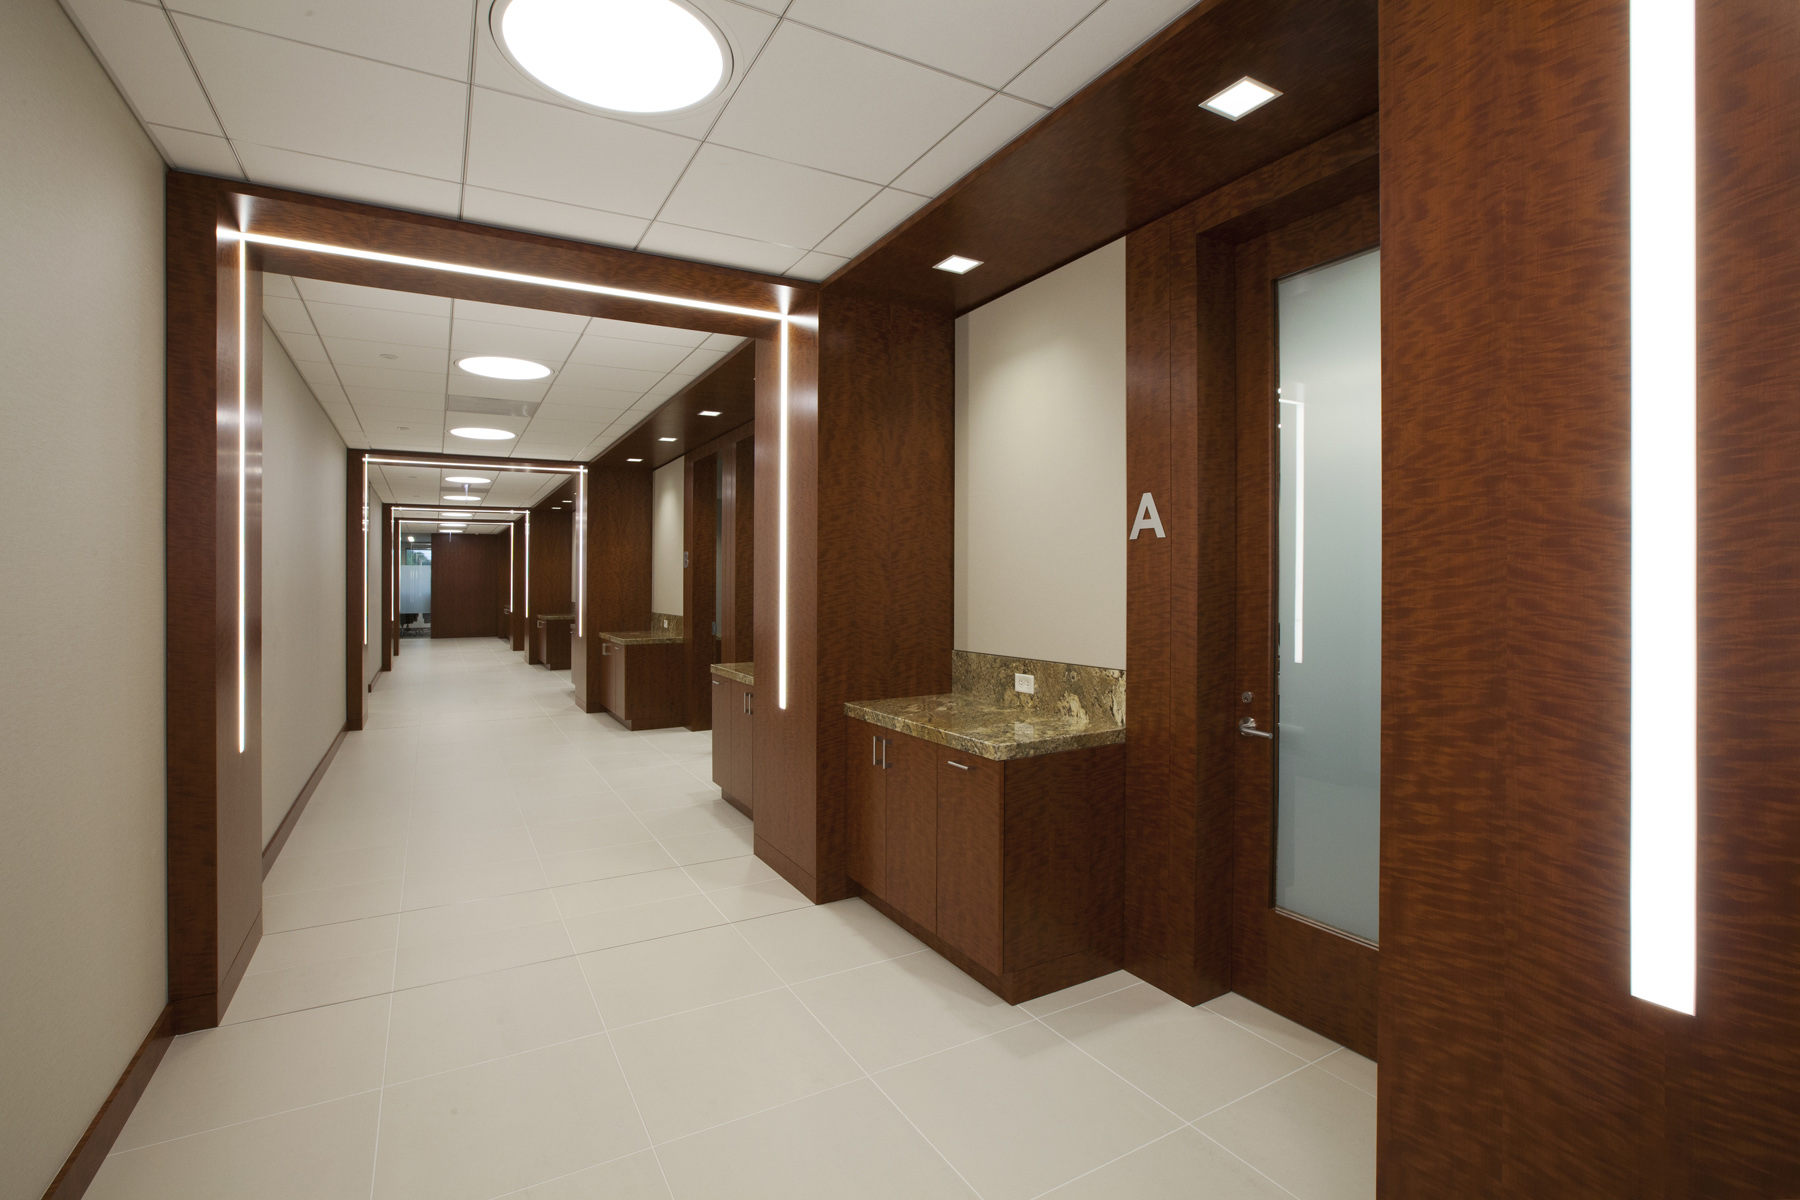 02 Fortune Brands – Conference Center Corridor